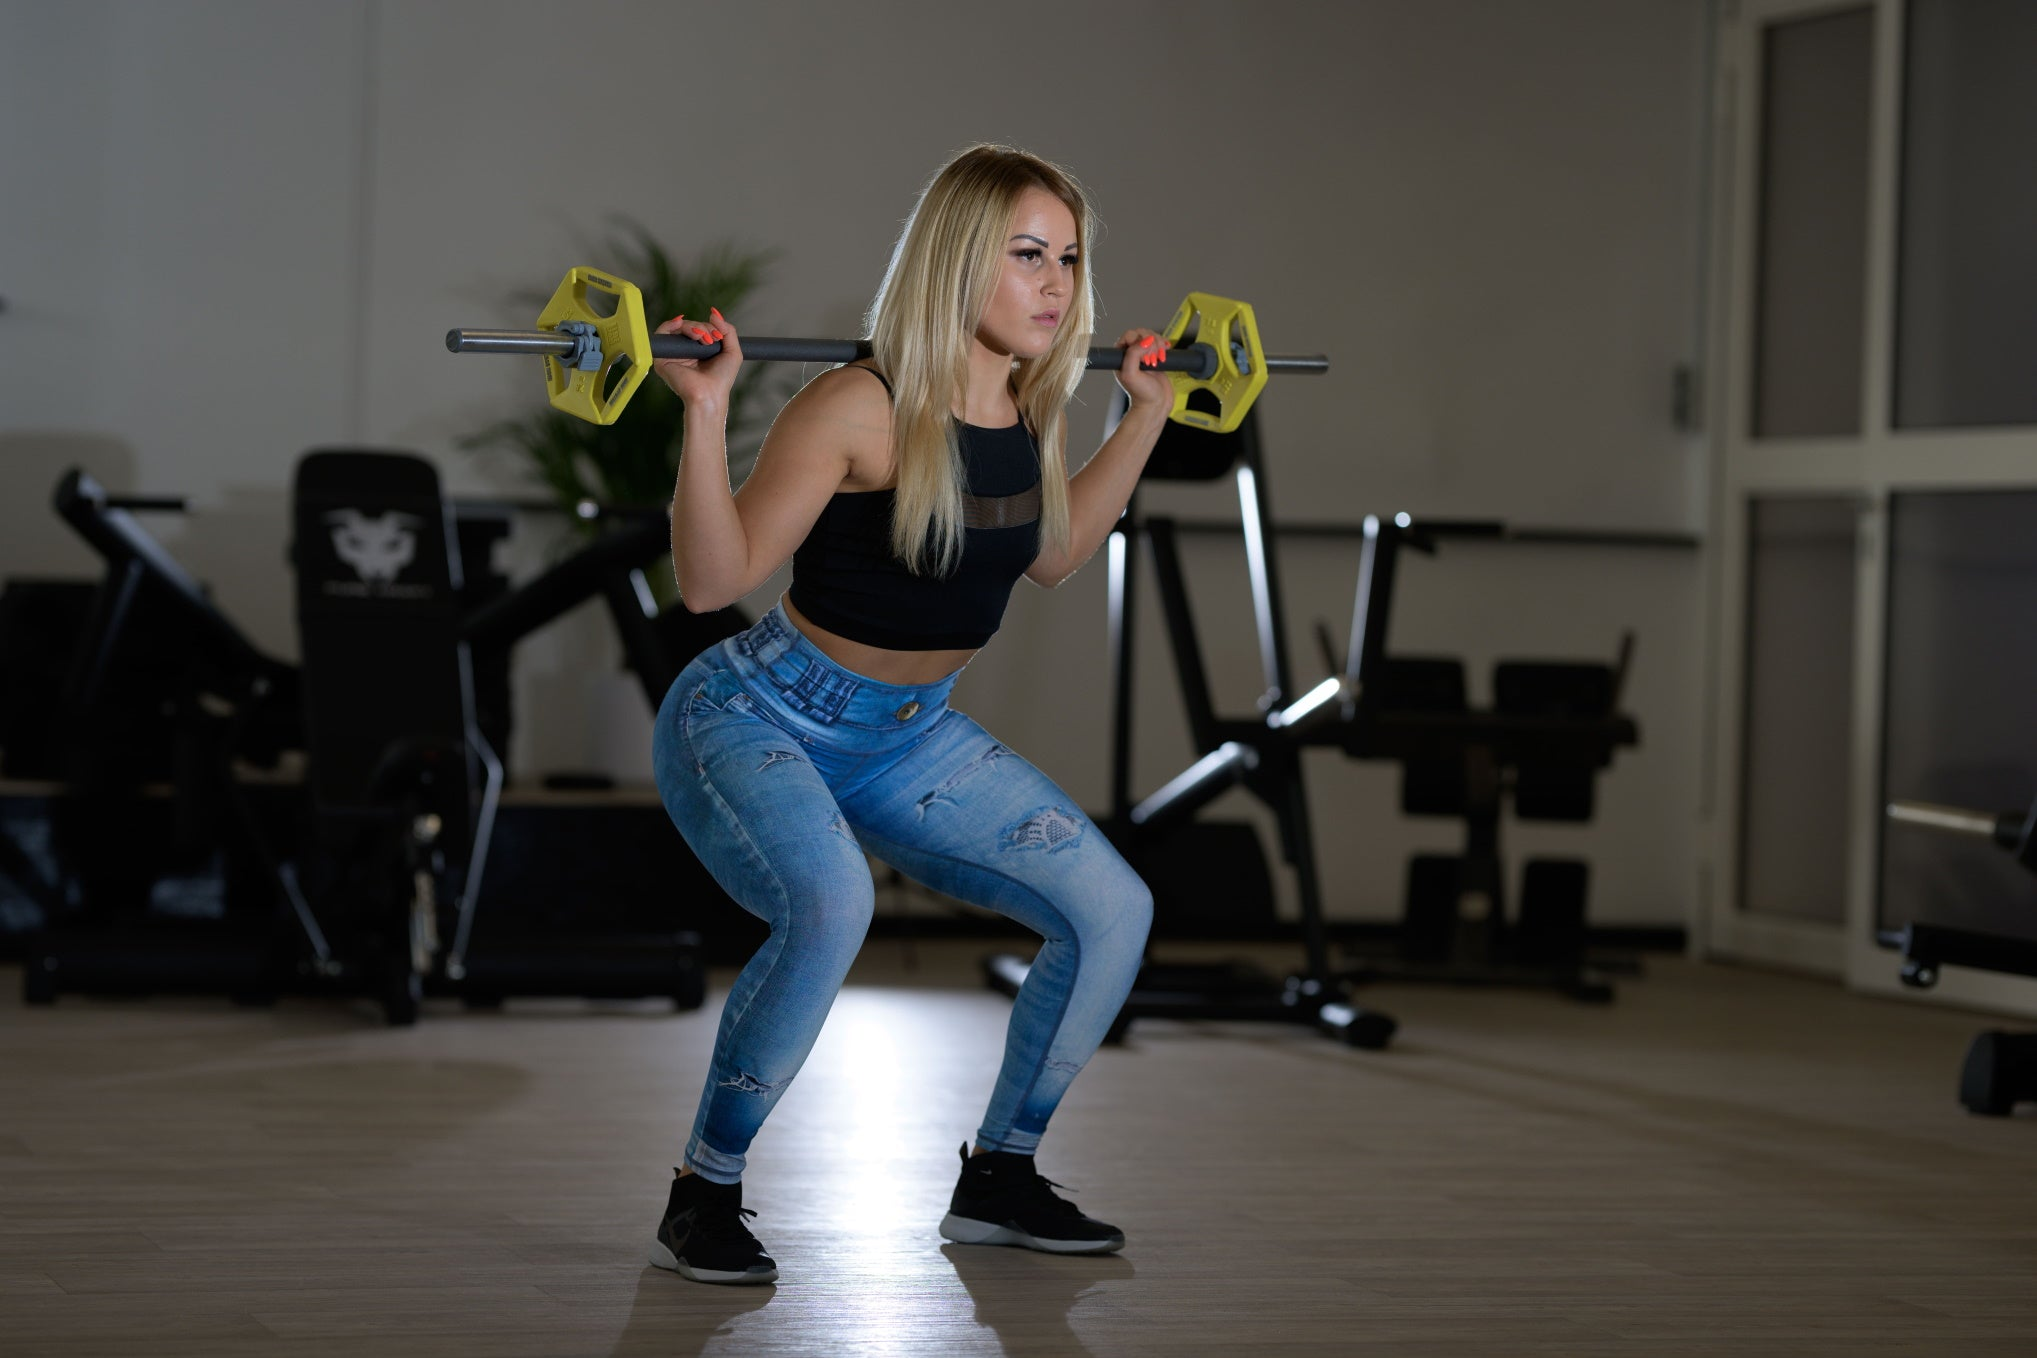 Model with barbell on the shoulders in denim jeans leggings style by Athletics Wear